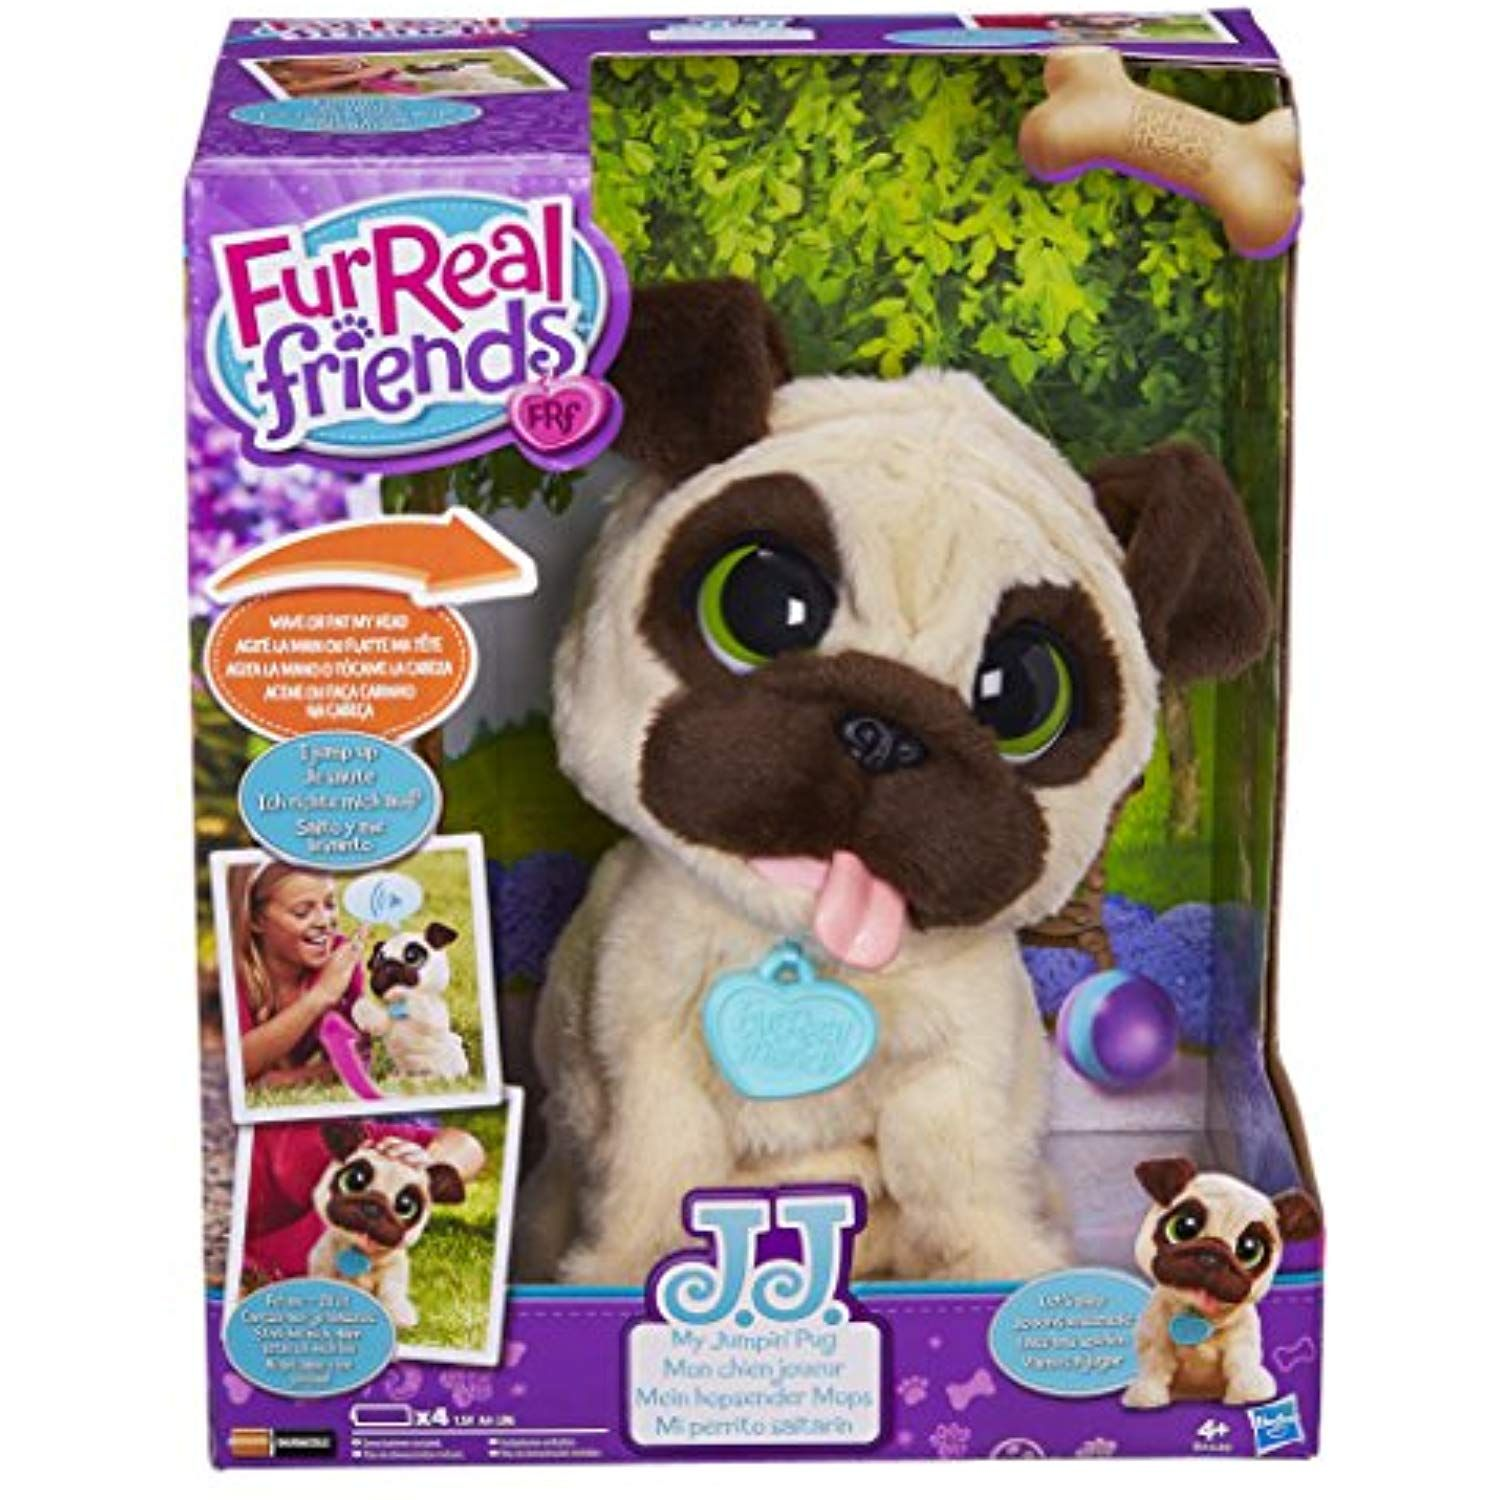 Furreal Friends Jj My Jumping Pug Pet Toy Click On The Image For Additional Details This Is An Affiliate Link Fur Real Friends Pet Toys Little Live Pets